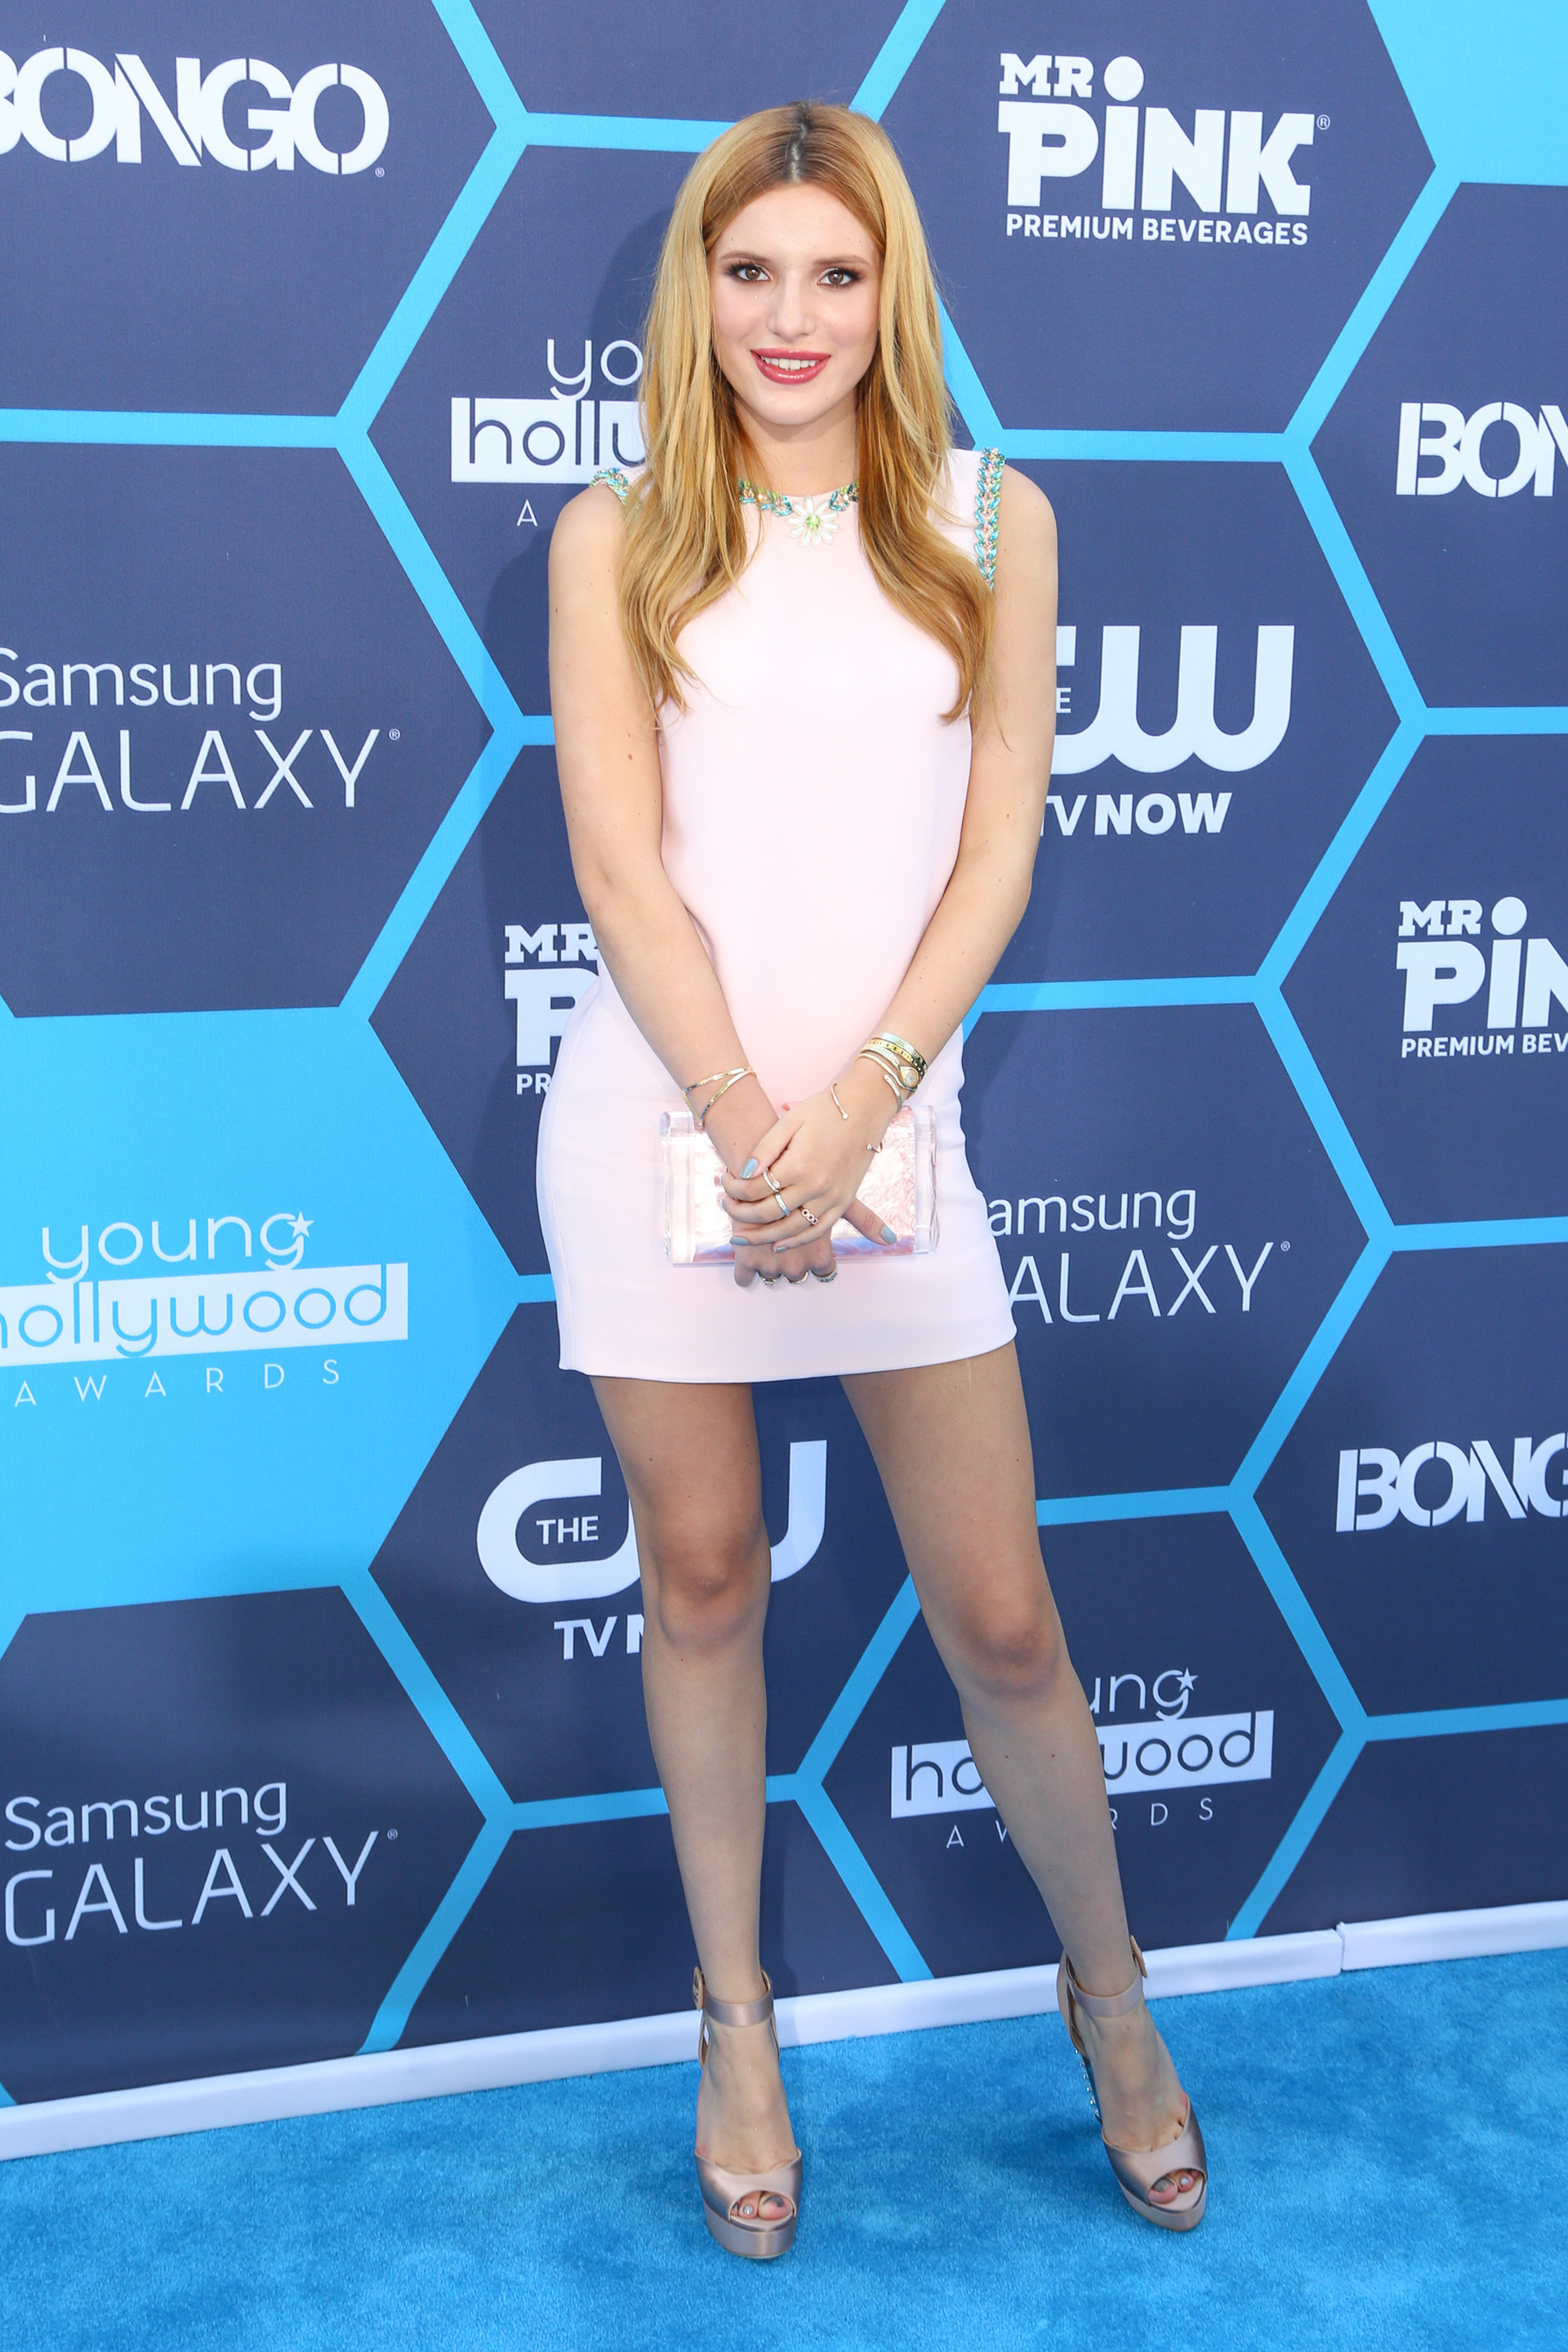 Weekly outfit obsessions: Emmy Rossum and Bella Thorne totally nail it